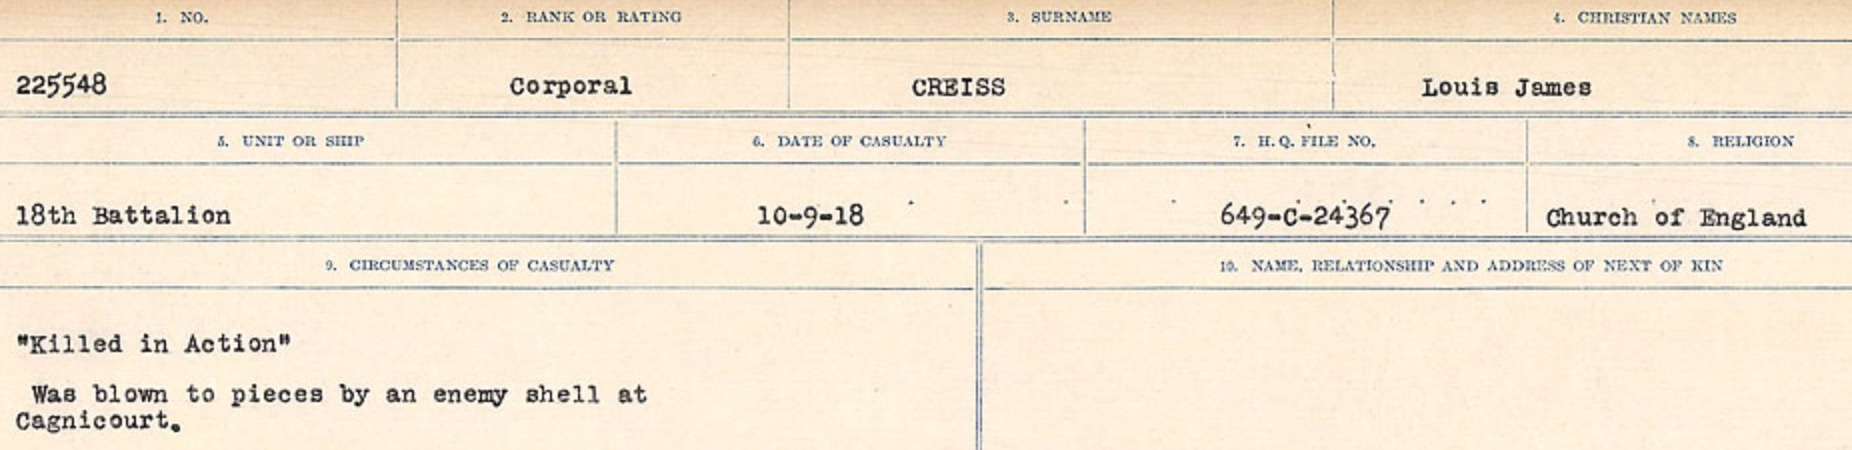 Circumstances of death registers– Source: Library and Archives Canada. CIRCUMSTANCES OF DEATH REGISTERS, FIRST WORLD WAR Surnames: CRABB TO CROSSLAND Microform Sequence 24; Volume Number 31829_B016733. Reference RG150, 1992-93/314, 168. Page 467 of 788.